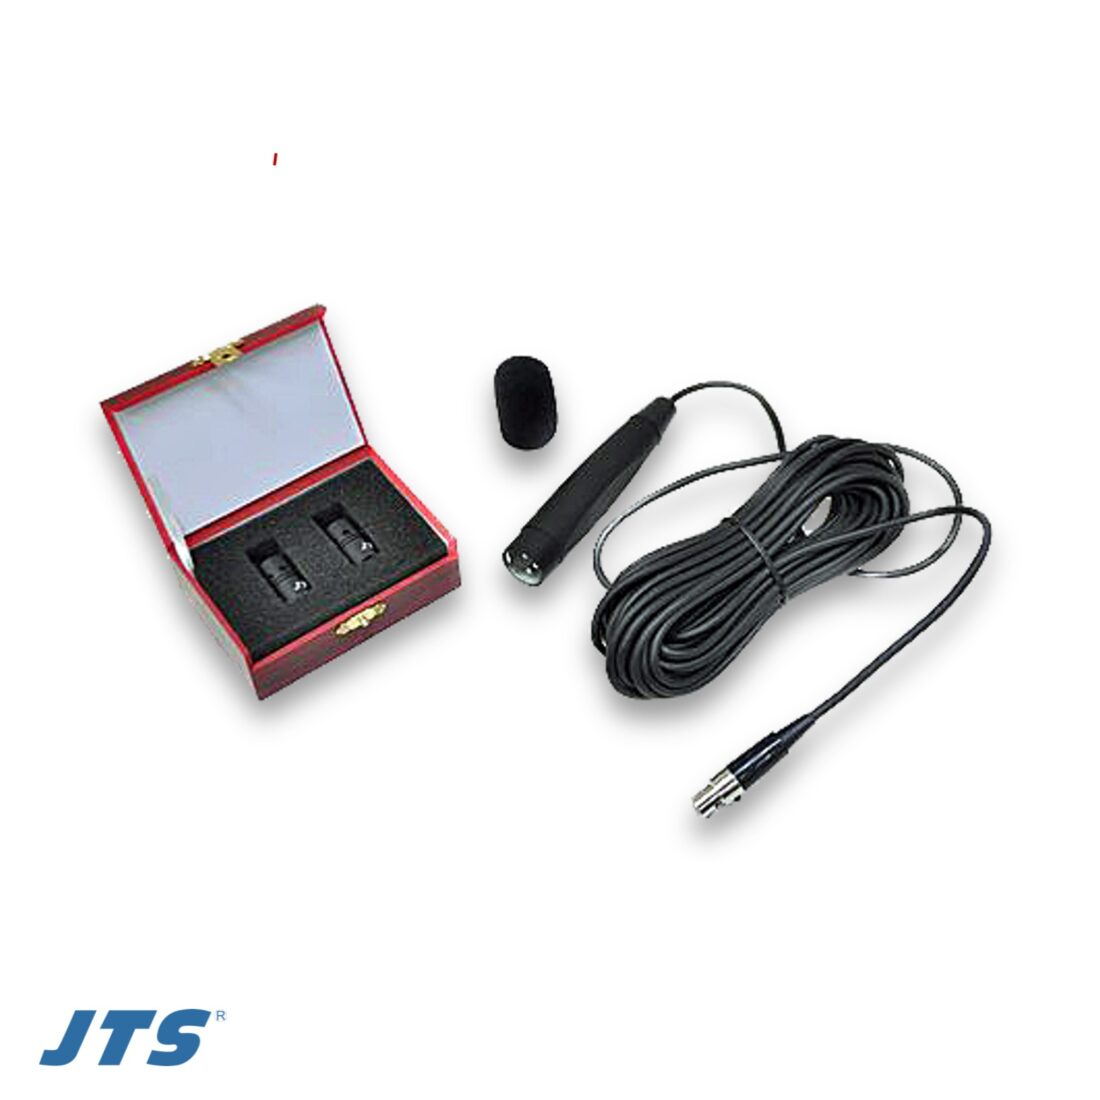 JTS- FGM-62 accessories